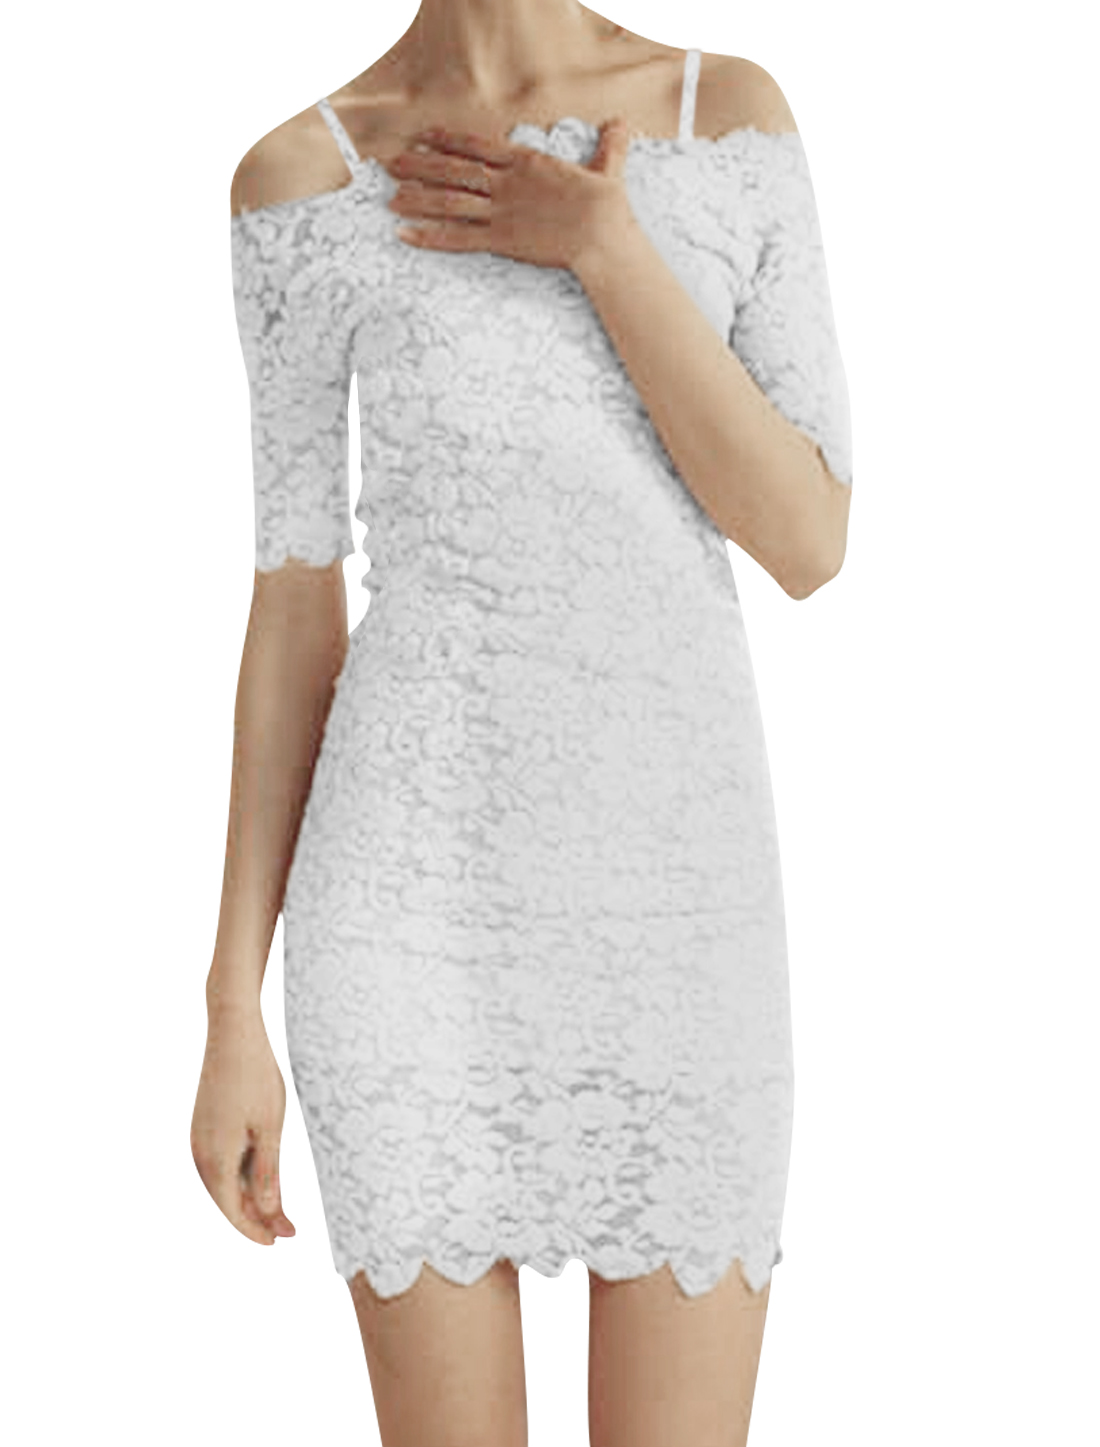 Woman NEW Scalloped Hem Design All Over Lace Covered White Mini Dress M